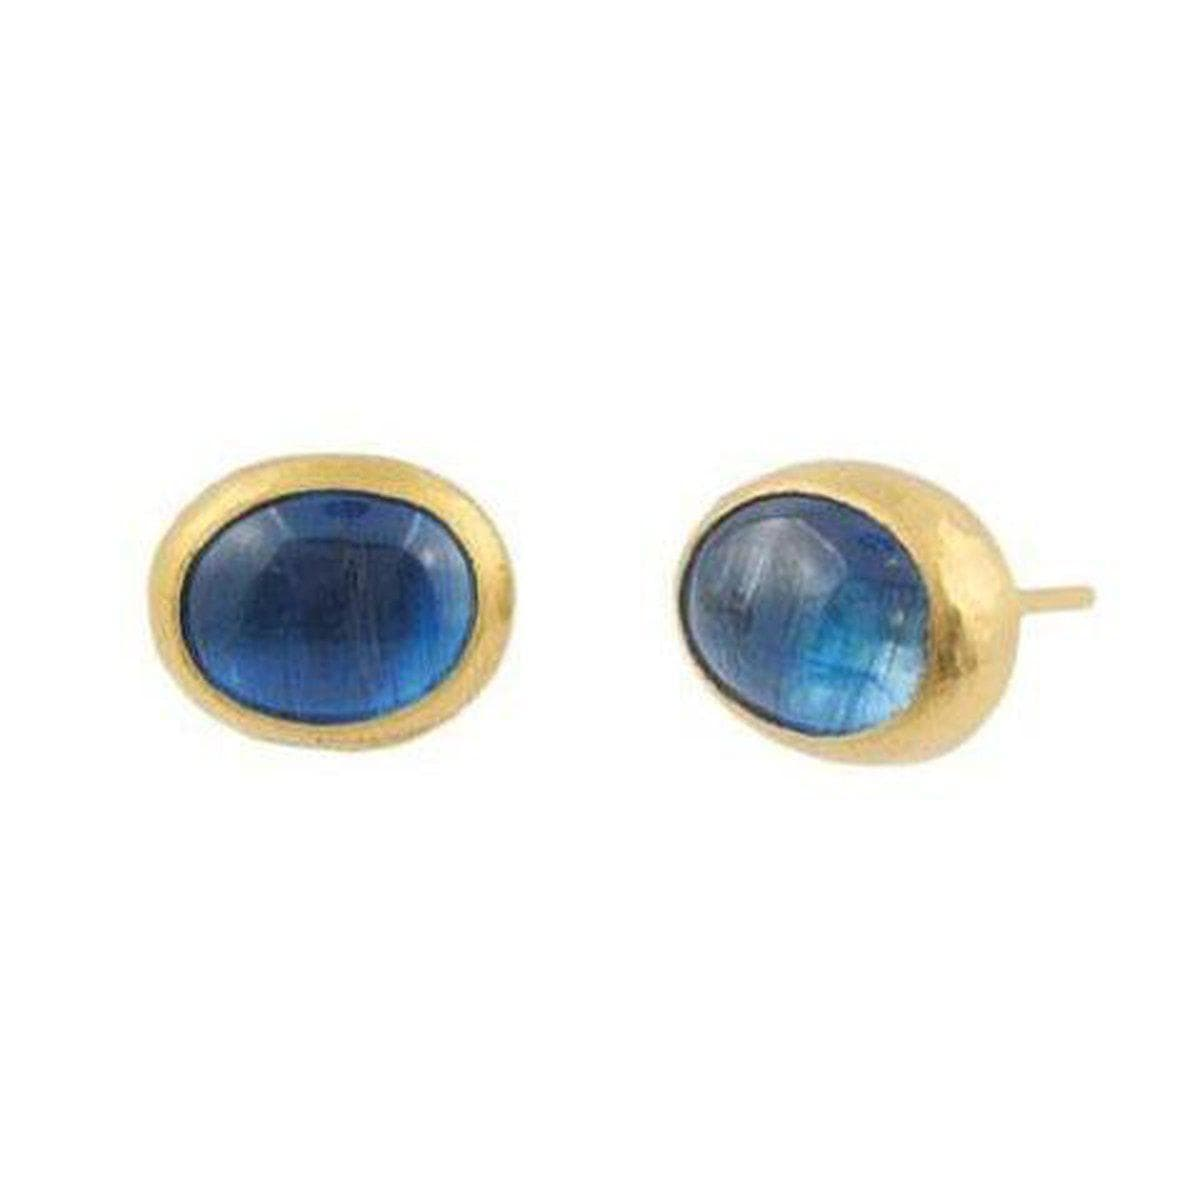 Amulet Hue 24K Gold Kyanite Earrings - E-U19846-KY-GURHAN-Renee Taylor Gallery